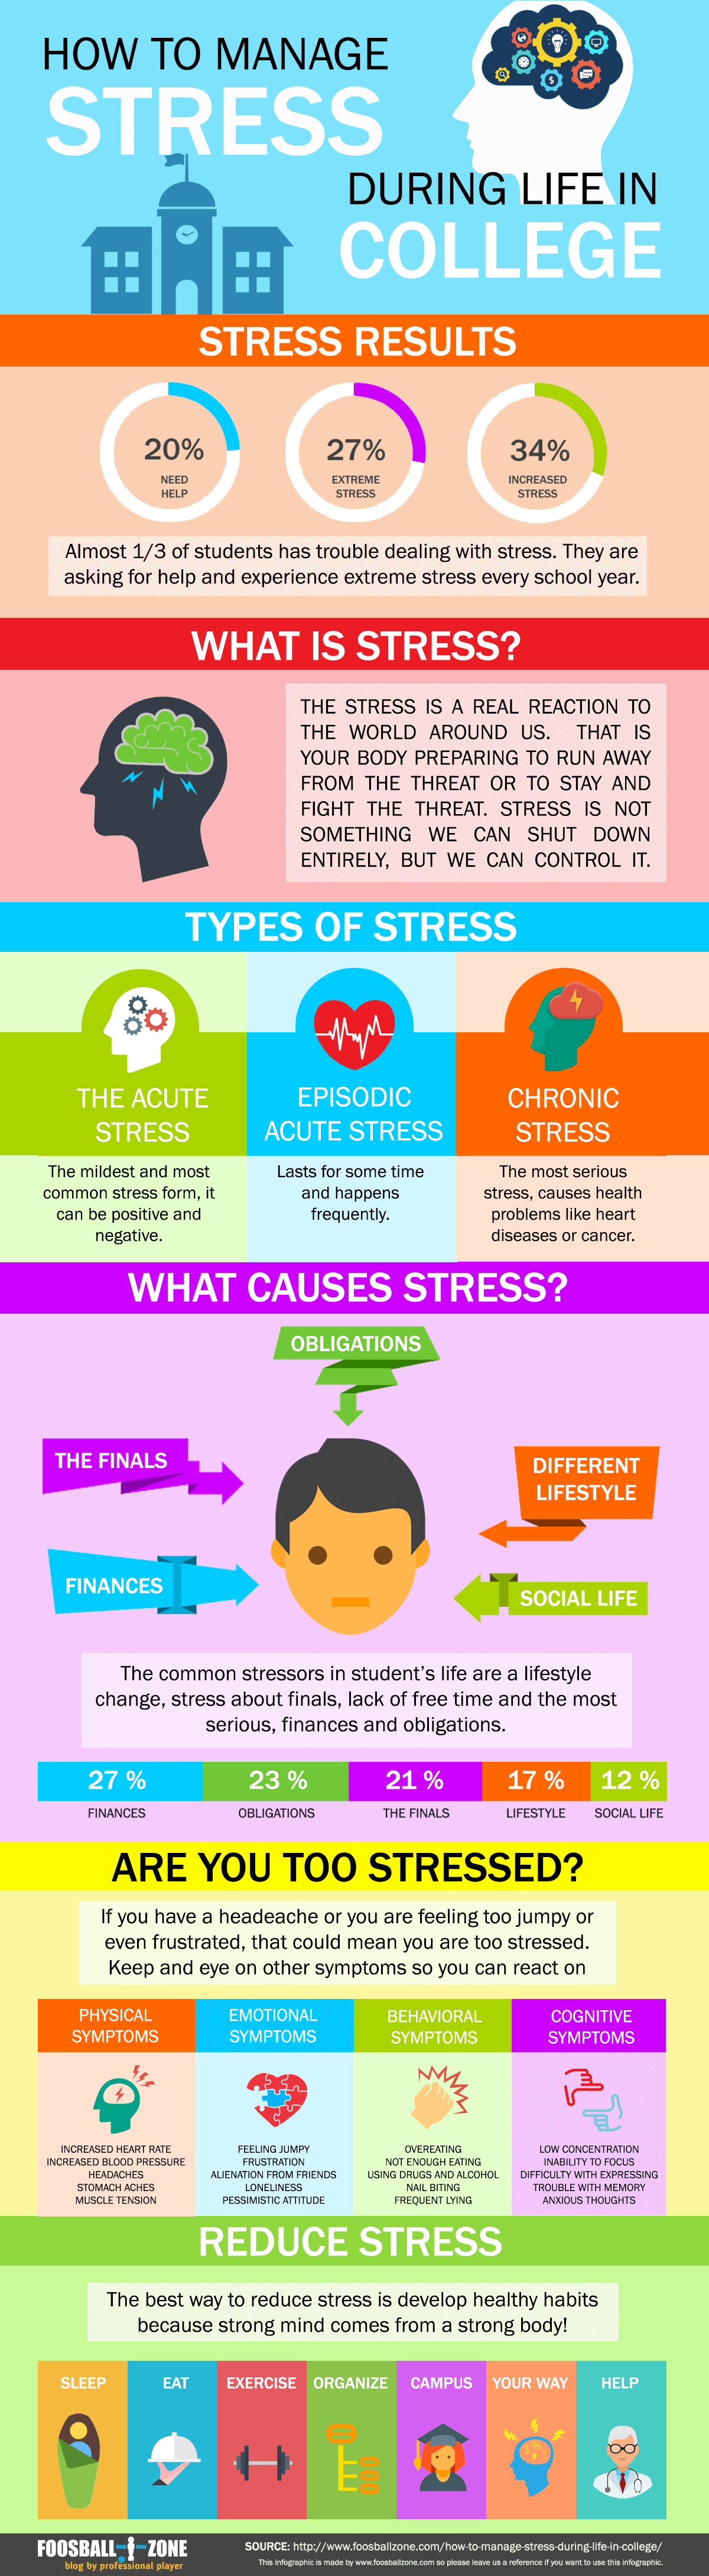 How To Manage Stress in Everyday Life